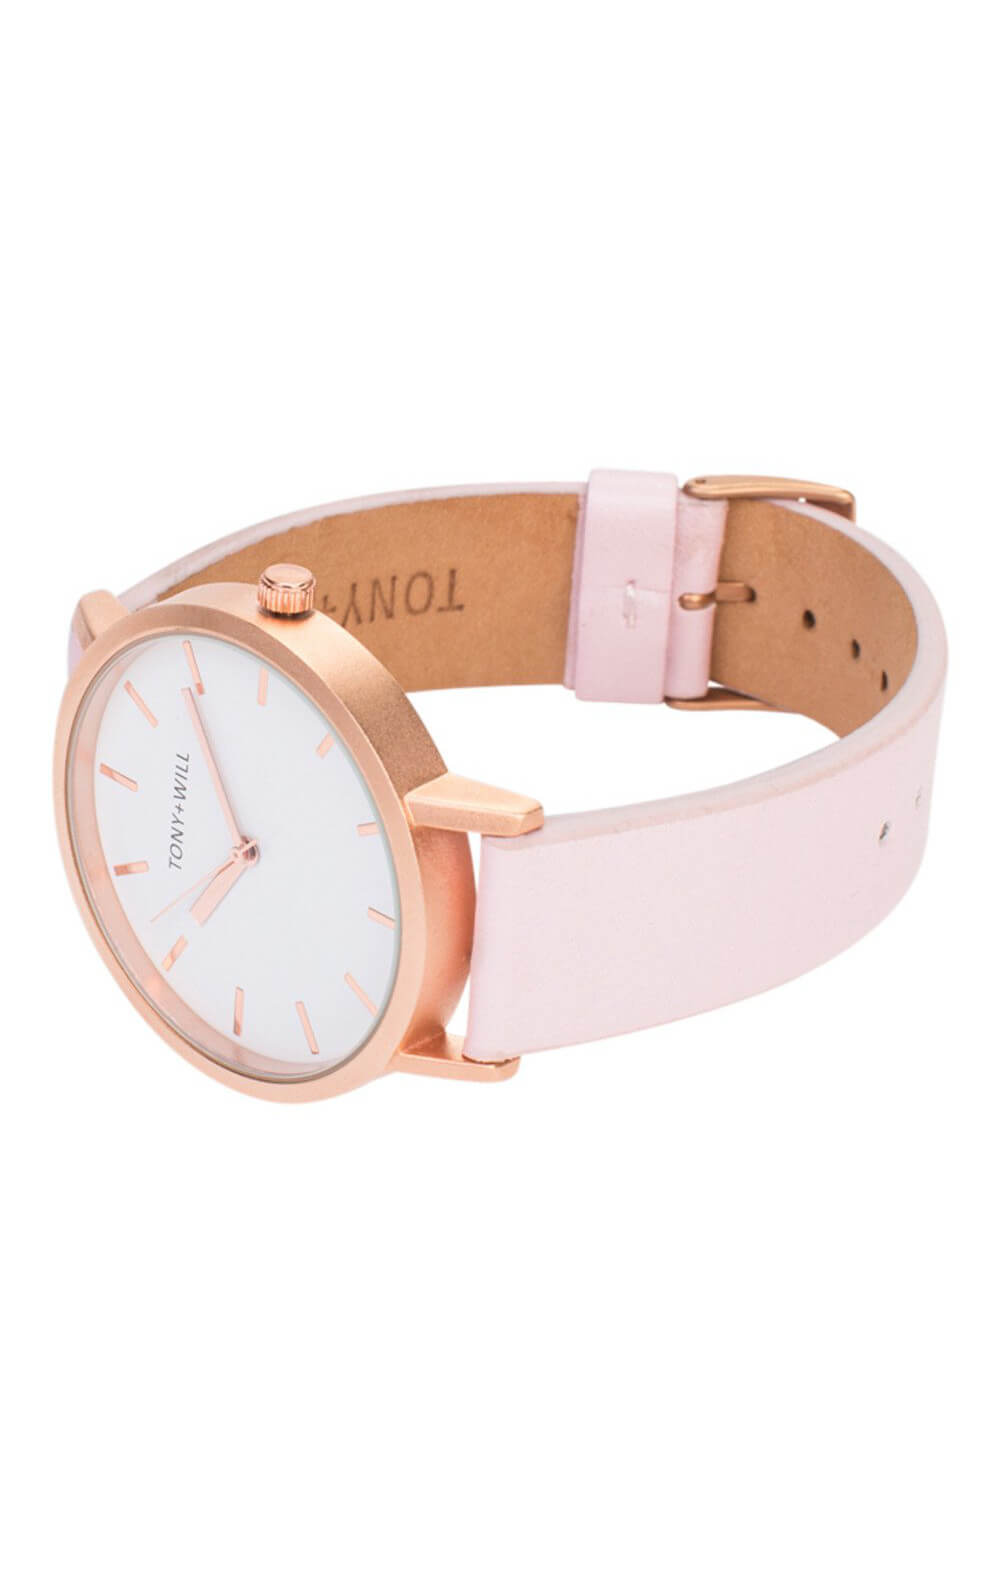 tony + will rose gold pink white watch